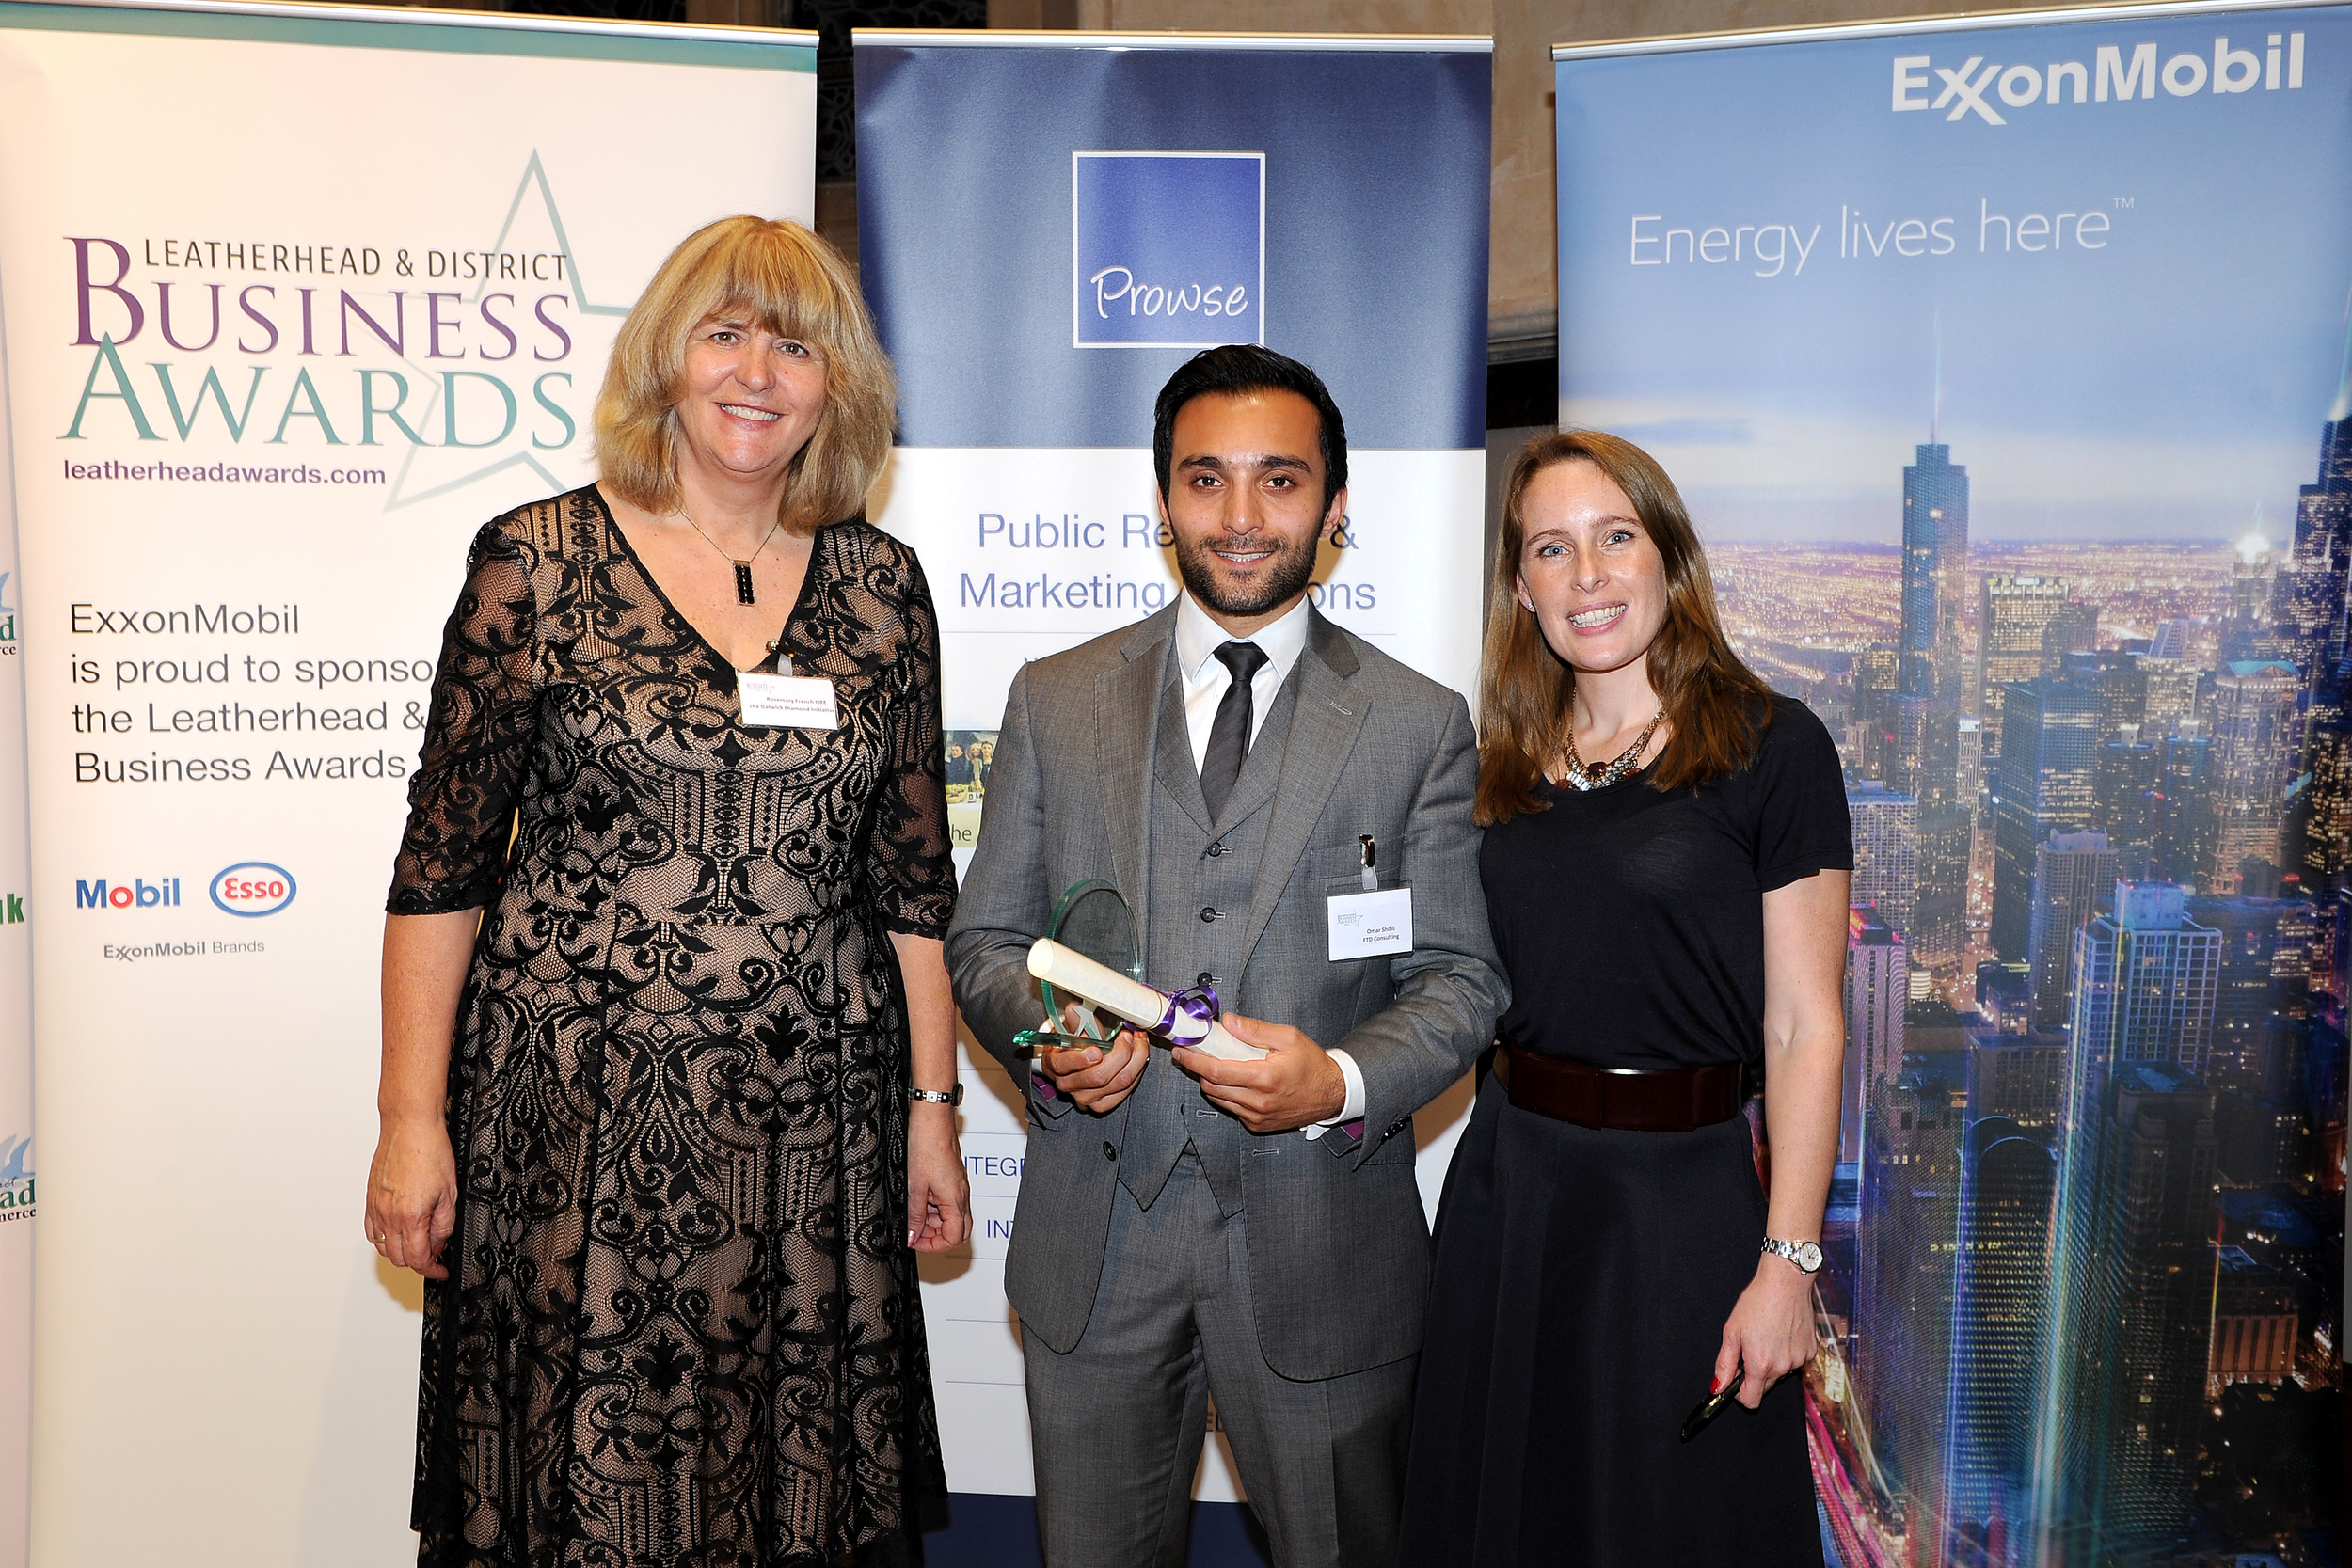 Omar Shibli collecting ETD's award from Rosemary French OBE, Executive Director at The Gatwick Diamond Initiative which sponsored the International Business of the Year category, and Clare Cowan from BBC Radio Surrey